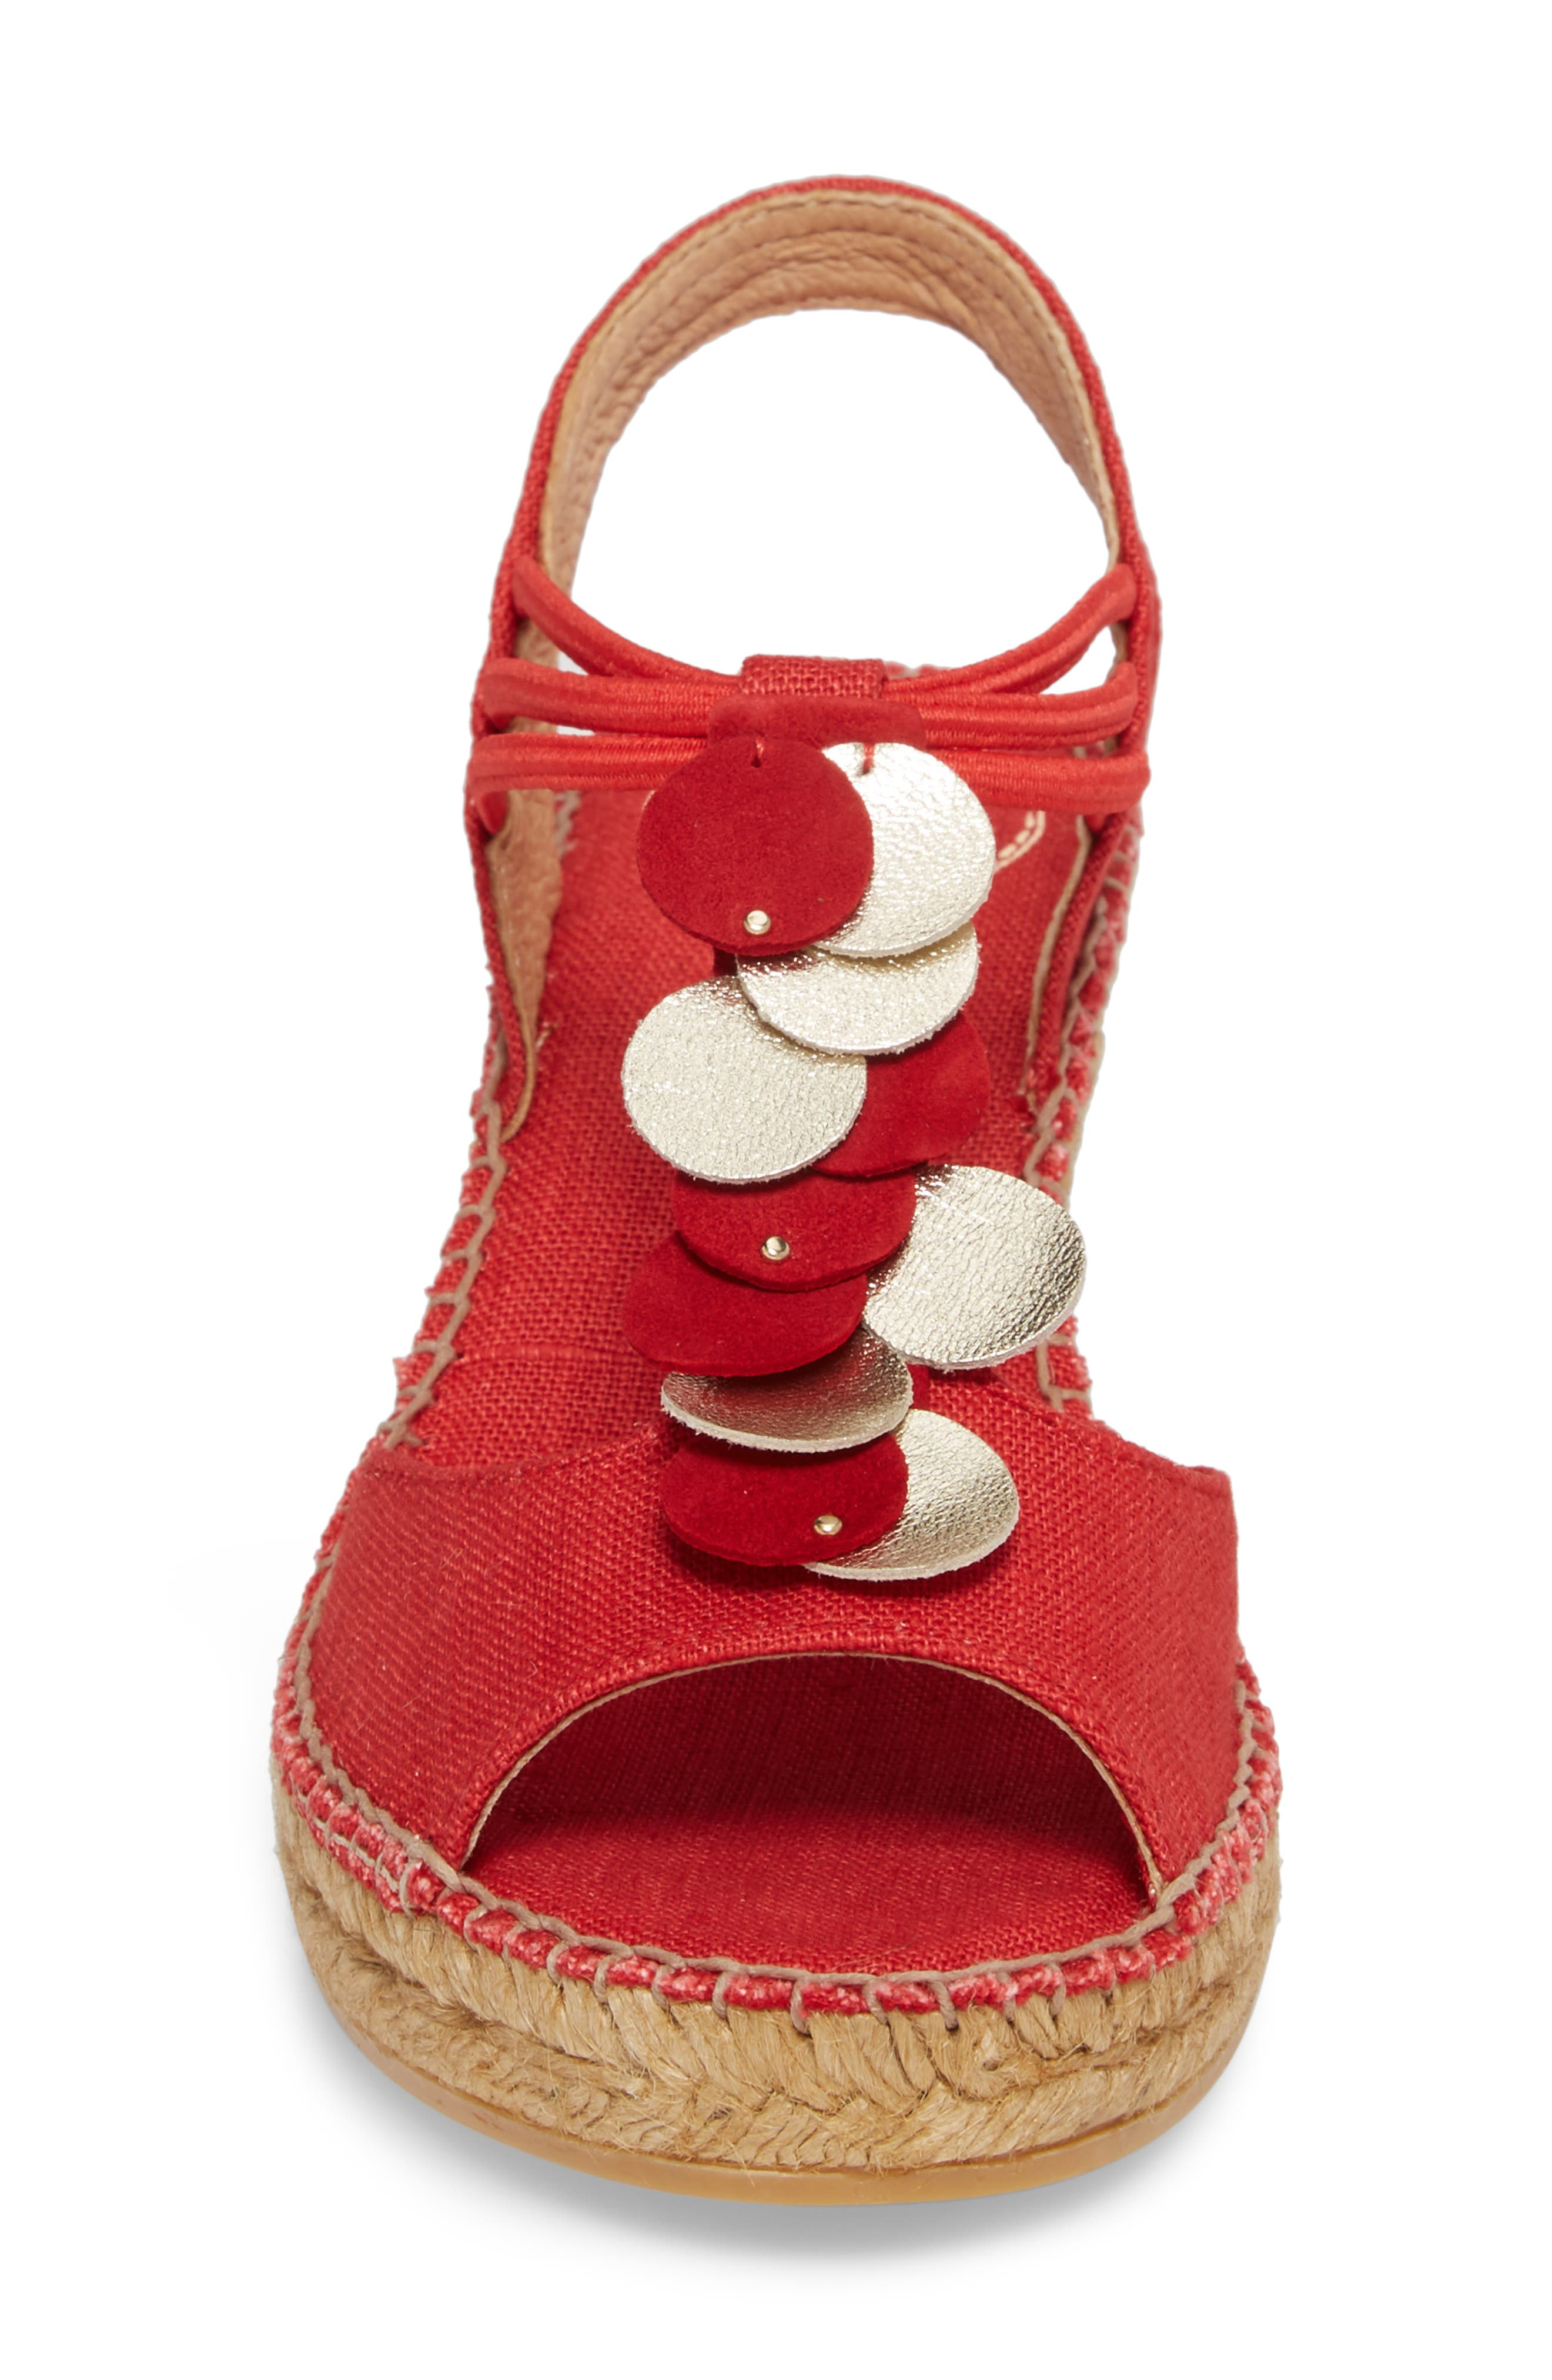 Sitges Espadrille Sandal,                             Alternate thumbnail 4, color,                             Red Fabric